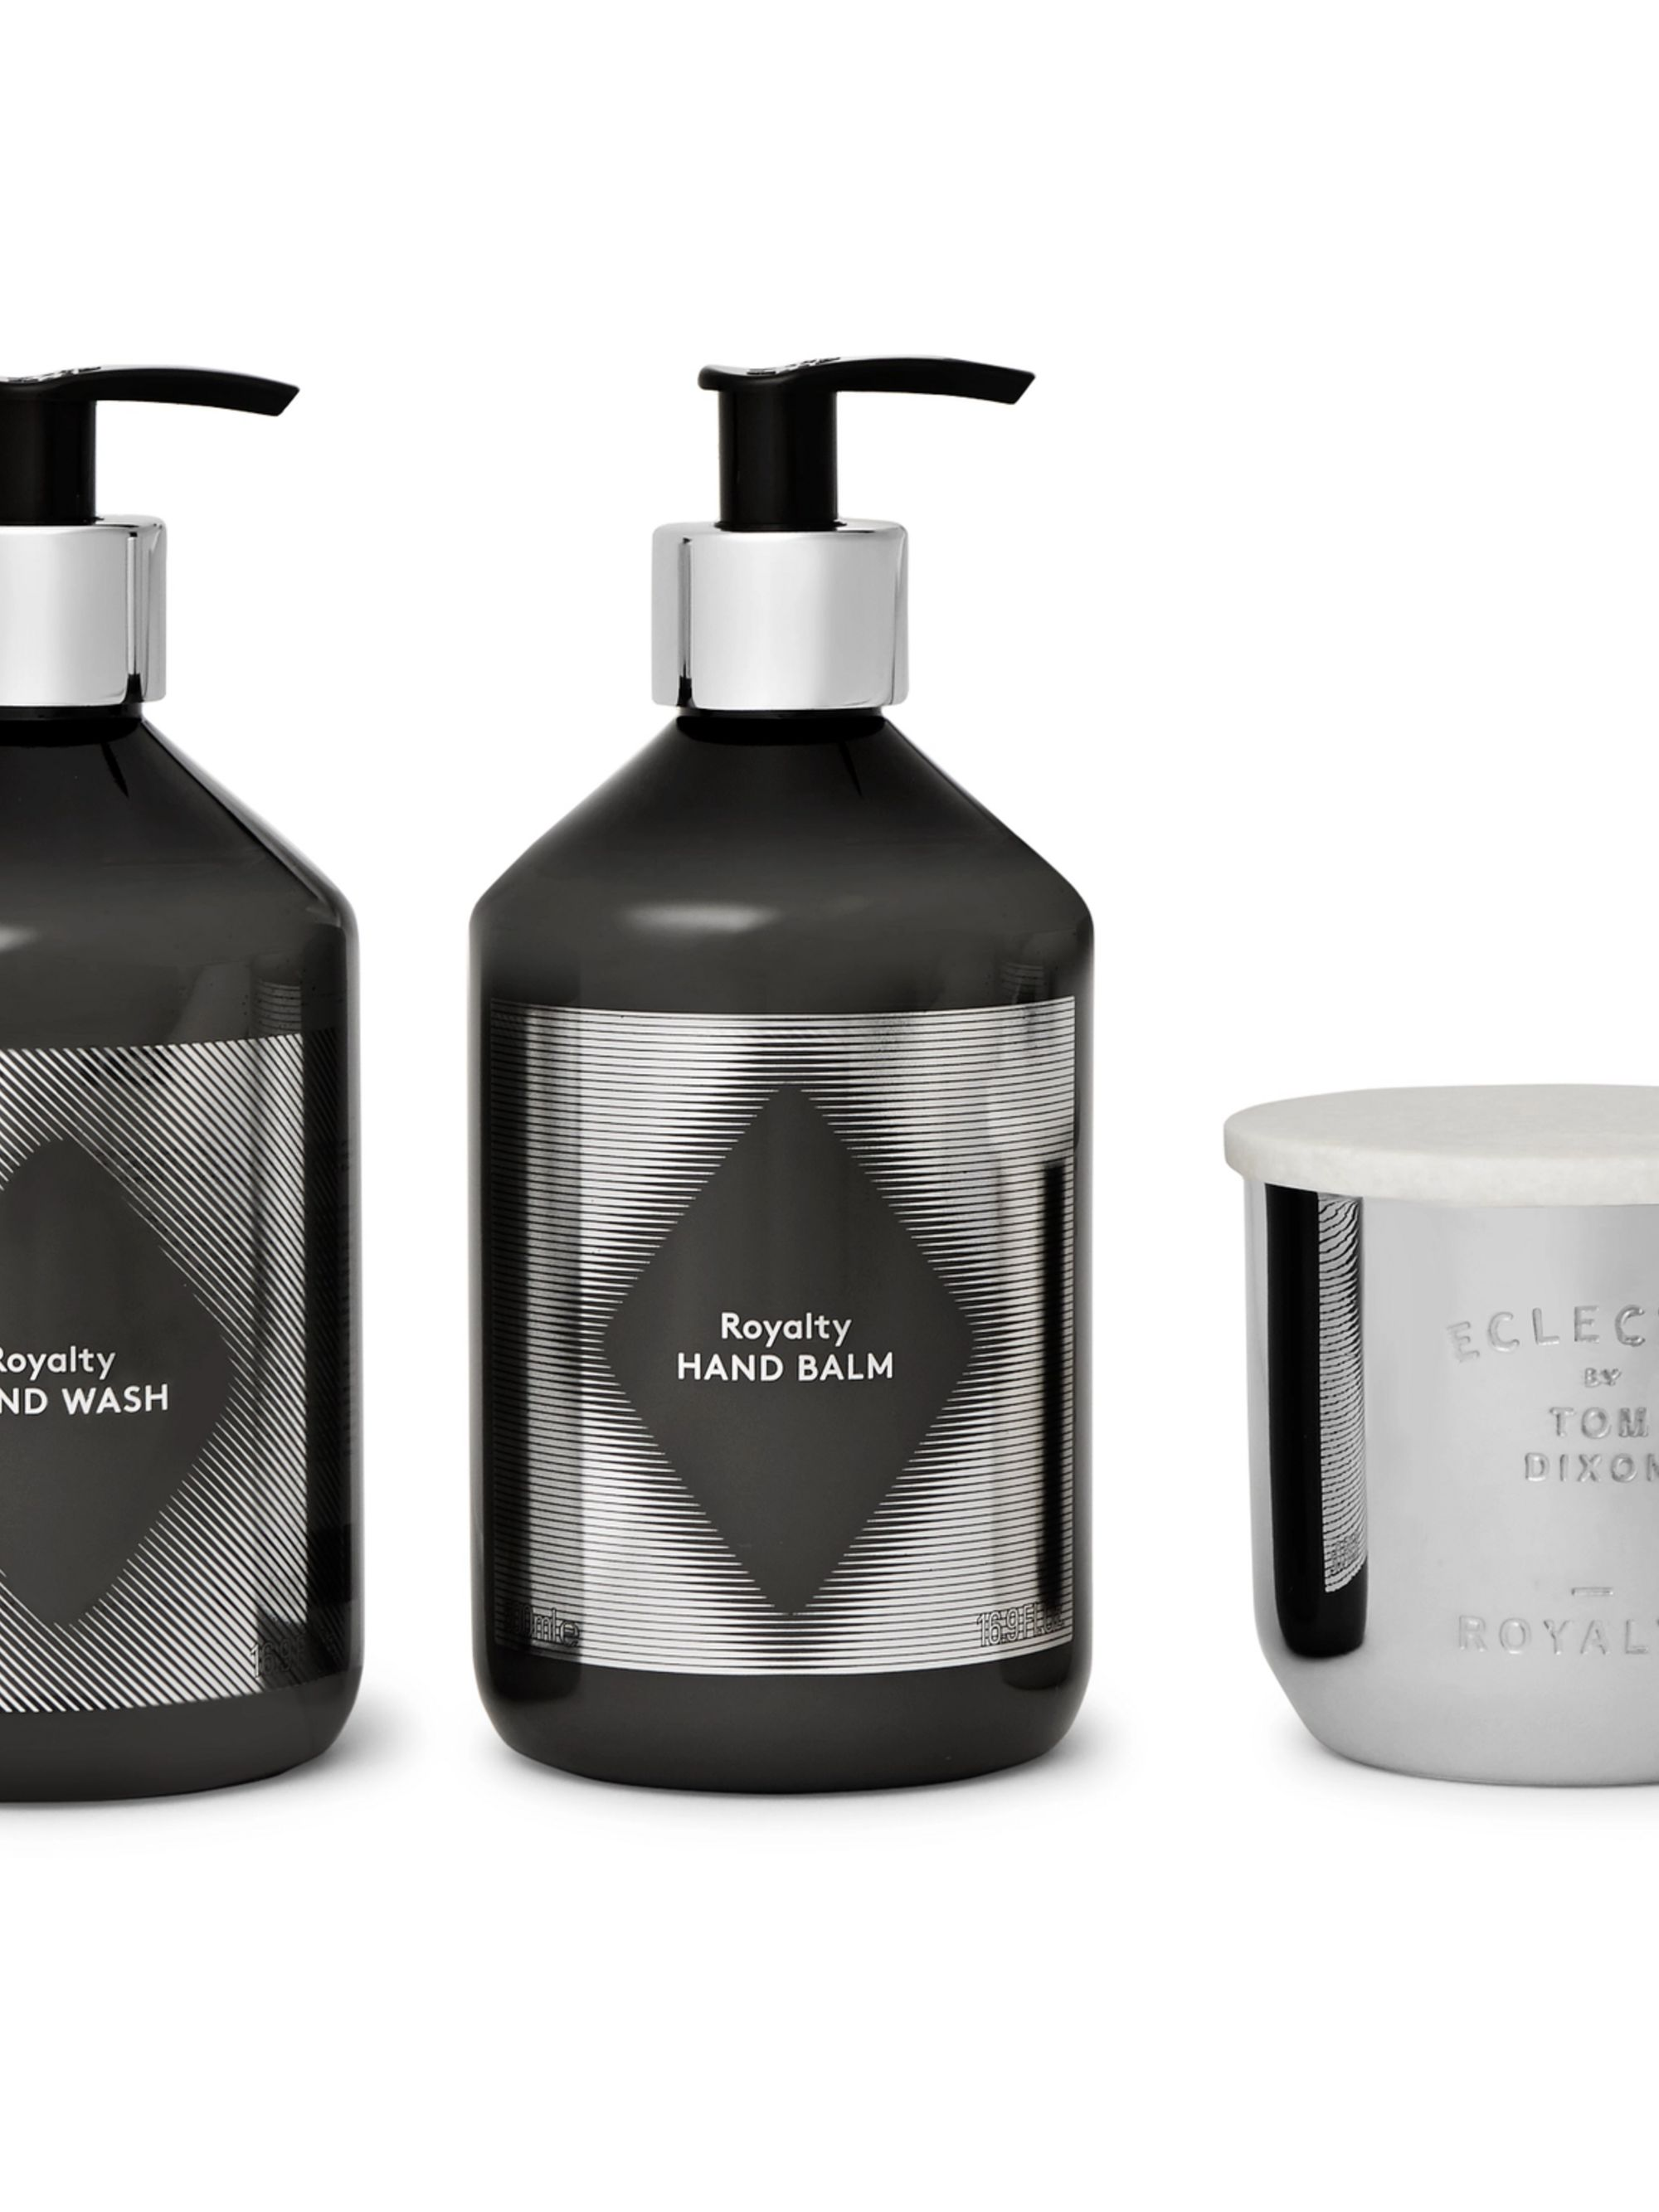 Tom Dixon Royalty Scented Candle, Hand Wash and Hand Balm Set